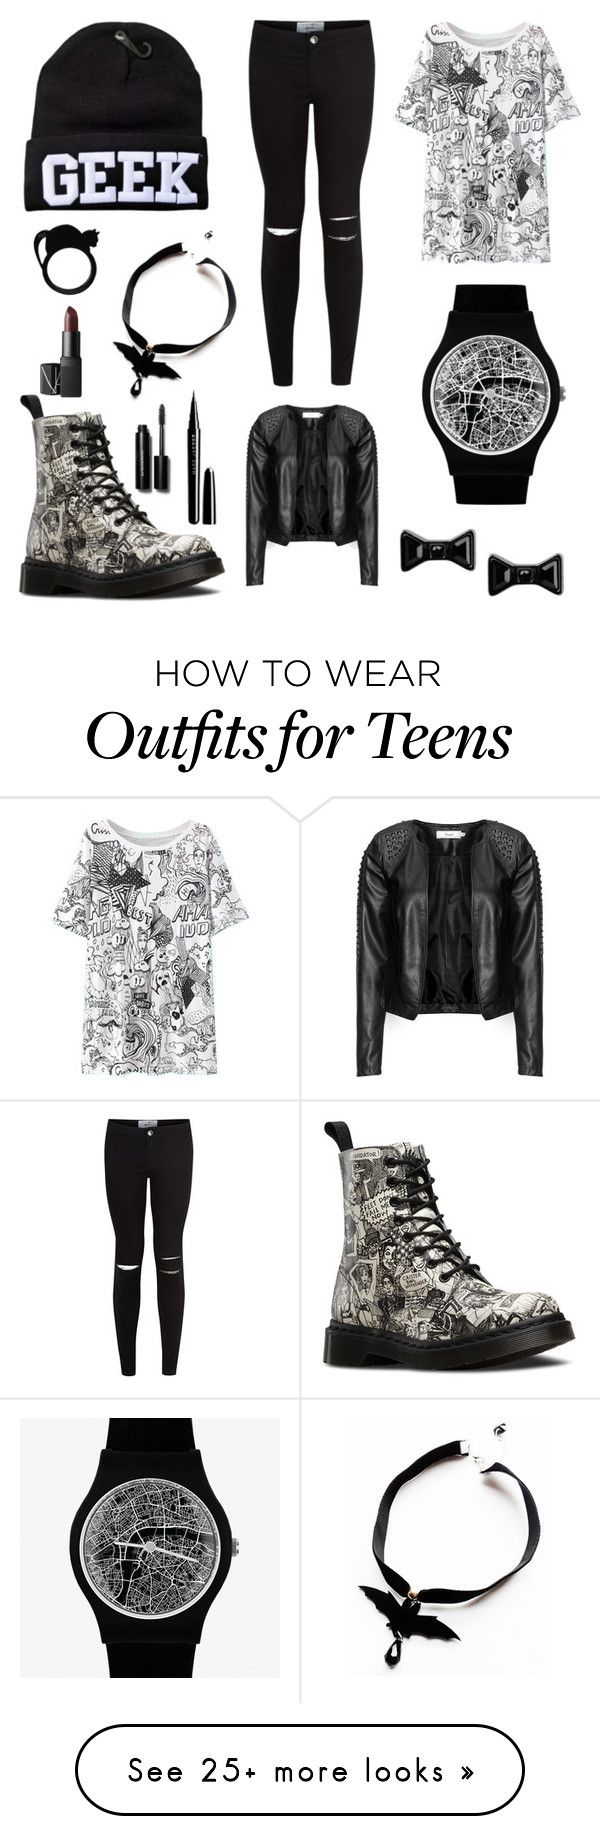 """""""Geek"""" by stuck-in-azkaban on Polyvore featuring Dr. Martens, Marc by Marc Jacobs, May28th, Zizzi, Bobbi Brown Cosmetics, Marc Jacobs and NARS Cosmetics"""